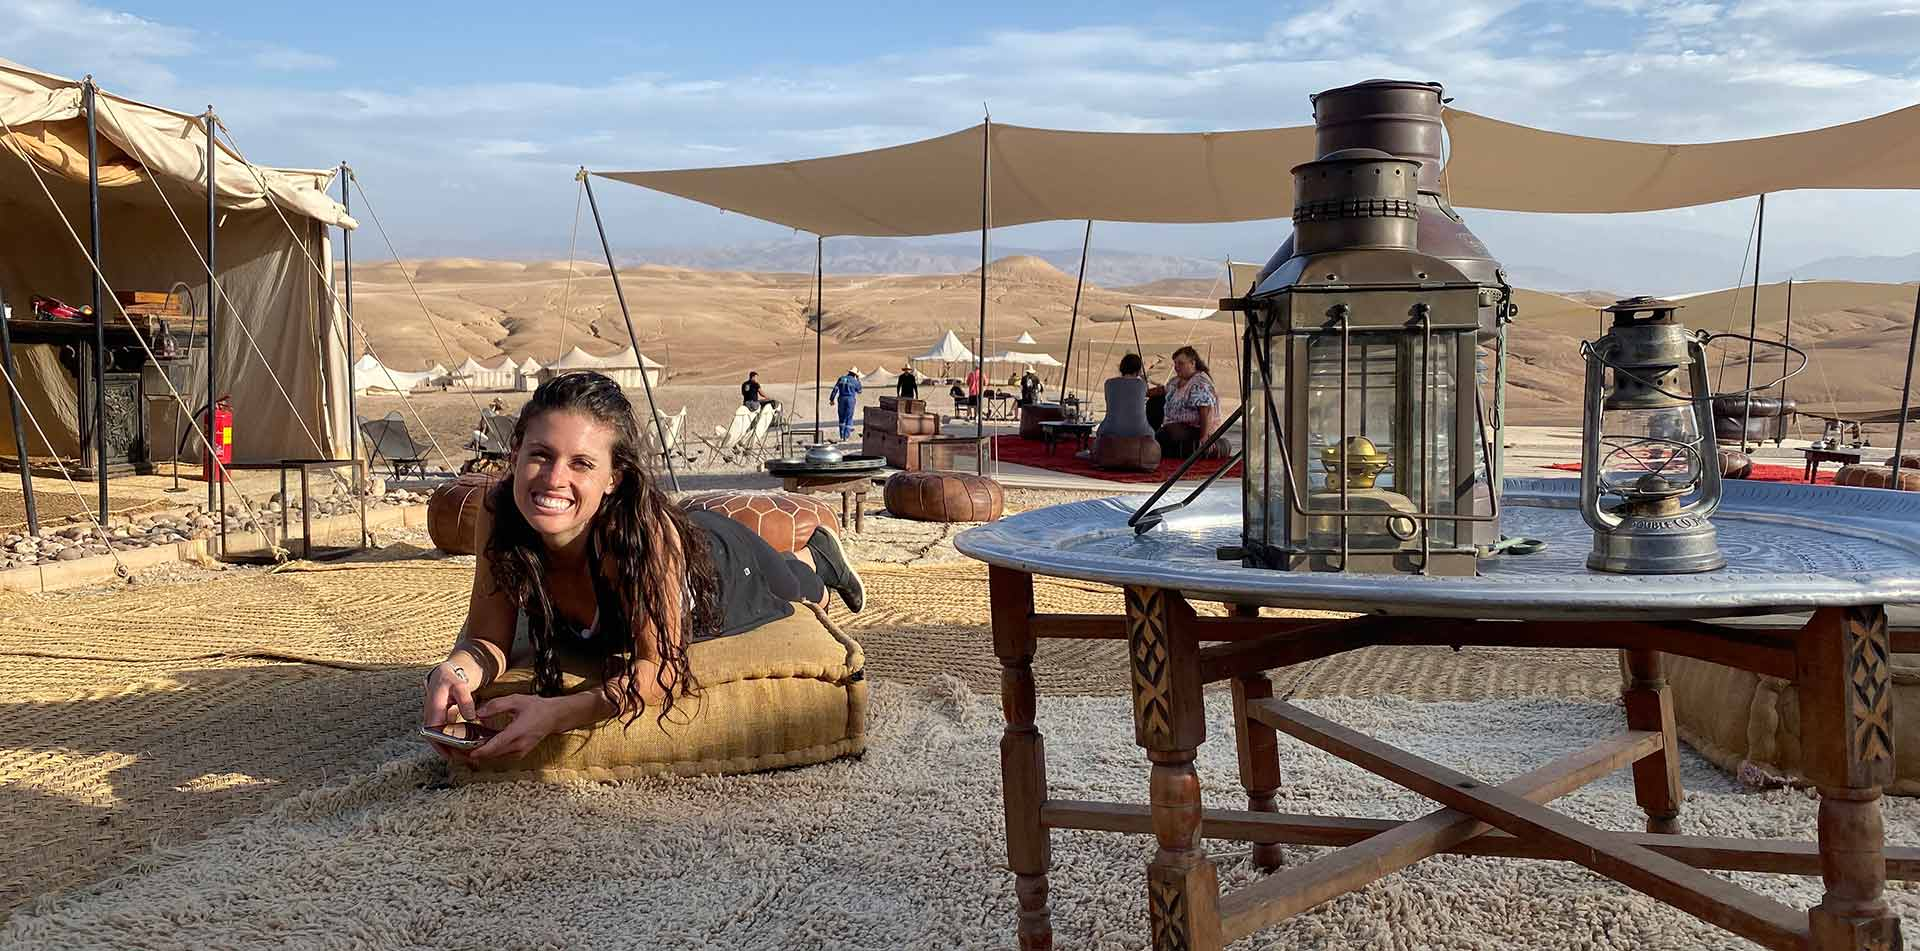 Africa Morocco Agafay Desert decorative Scarabeo Camp young girl smiling laying on pillow - luxury vacation destinations